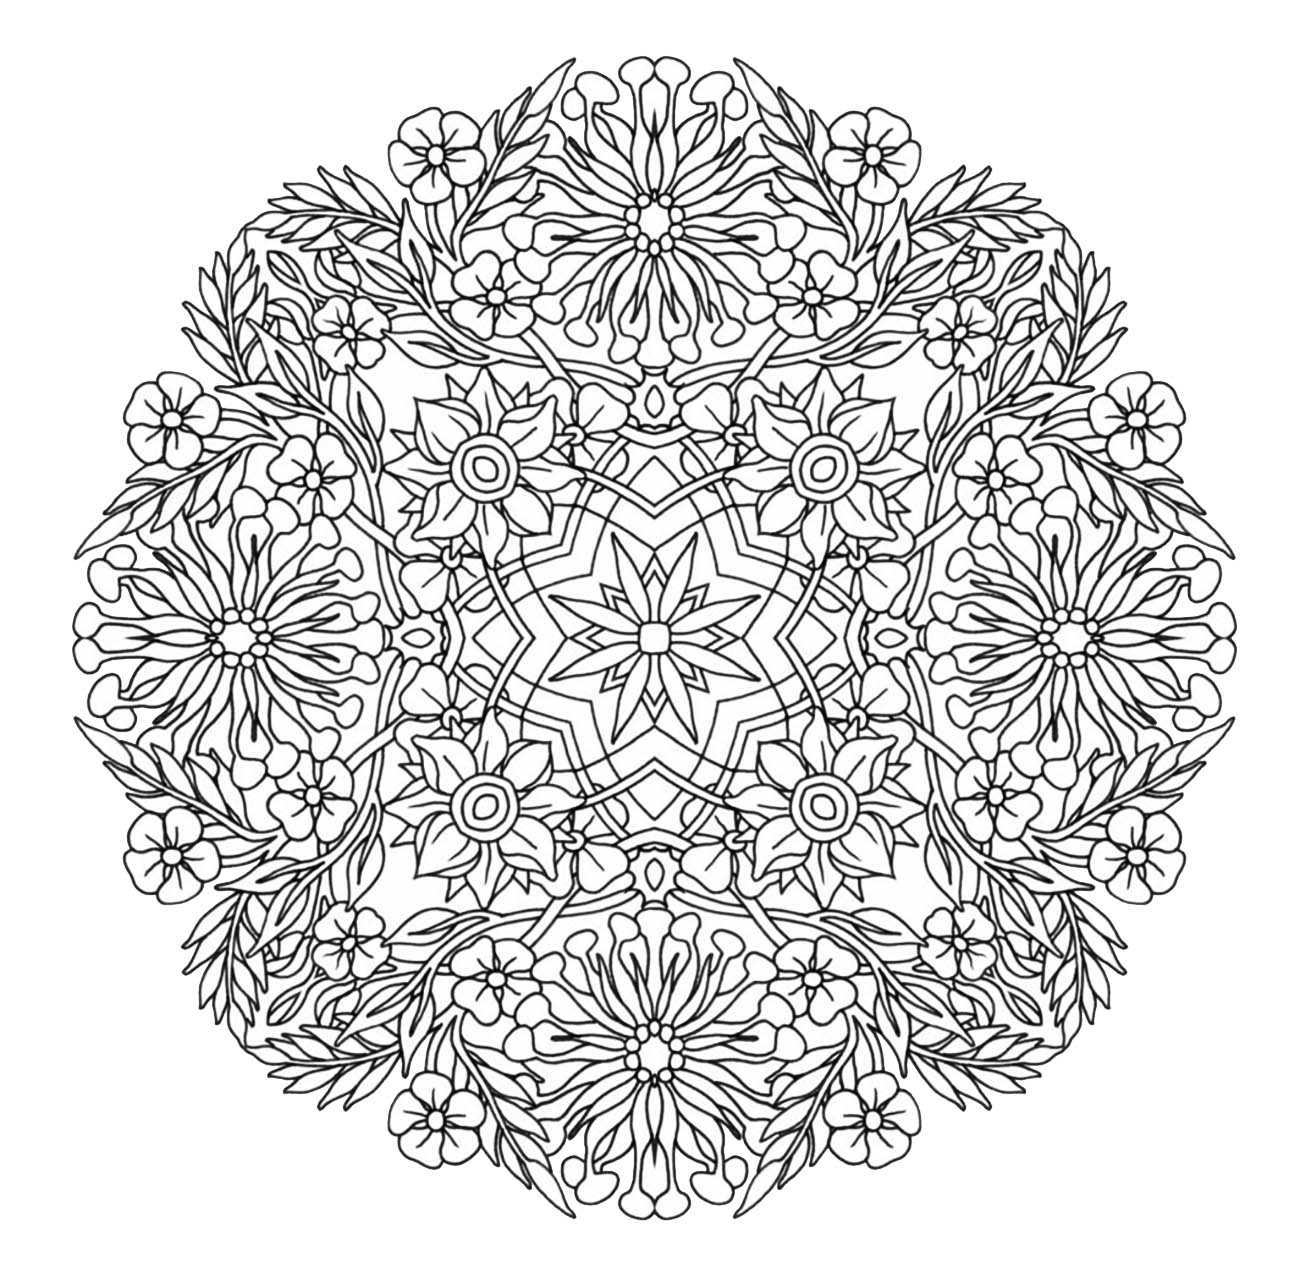 mandala coloring pages for adults free zodiac coloring pages best coloring pages for kids mandala free adults pages for coloring